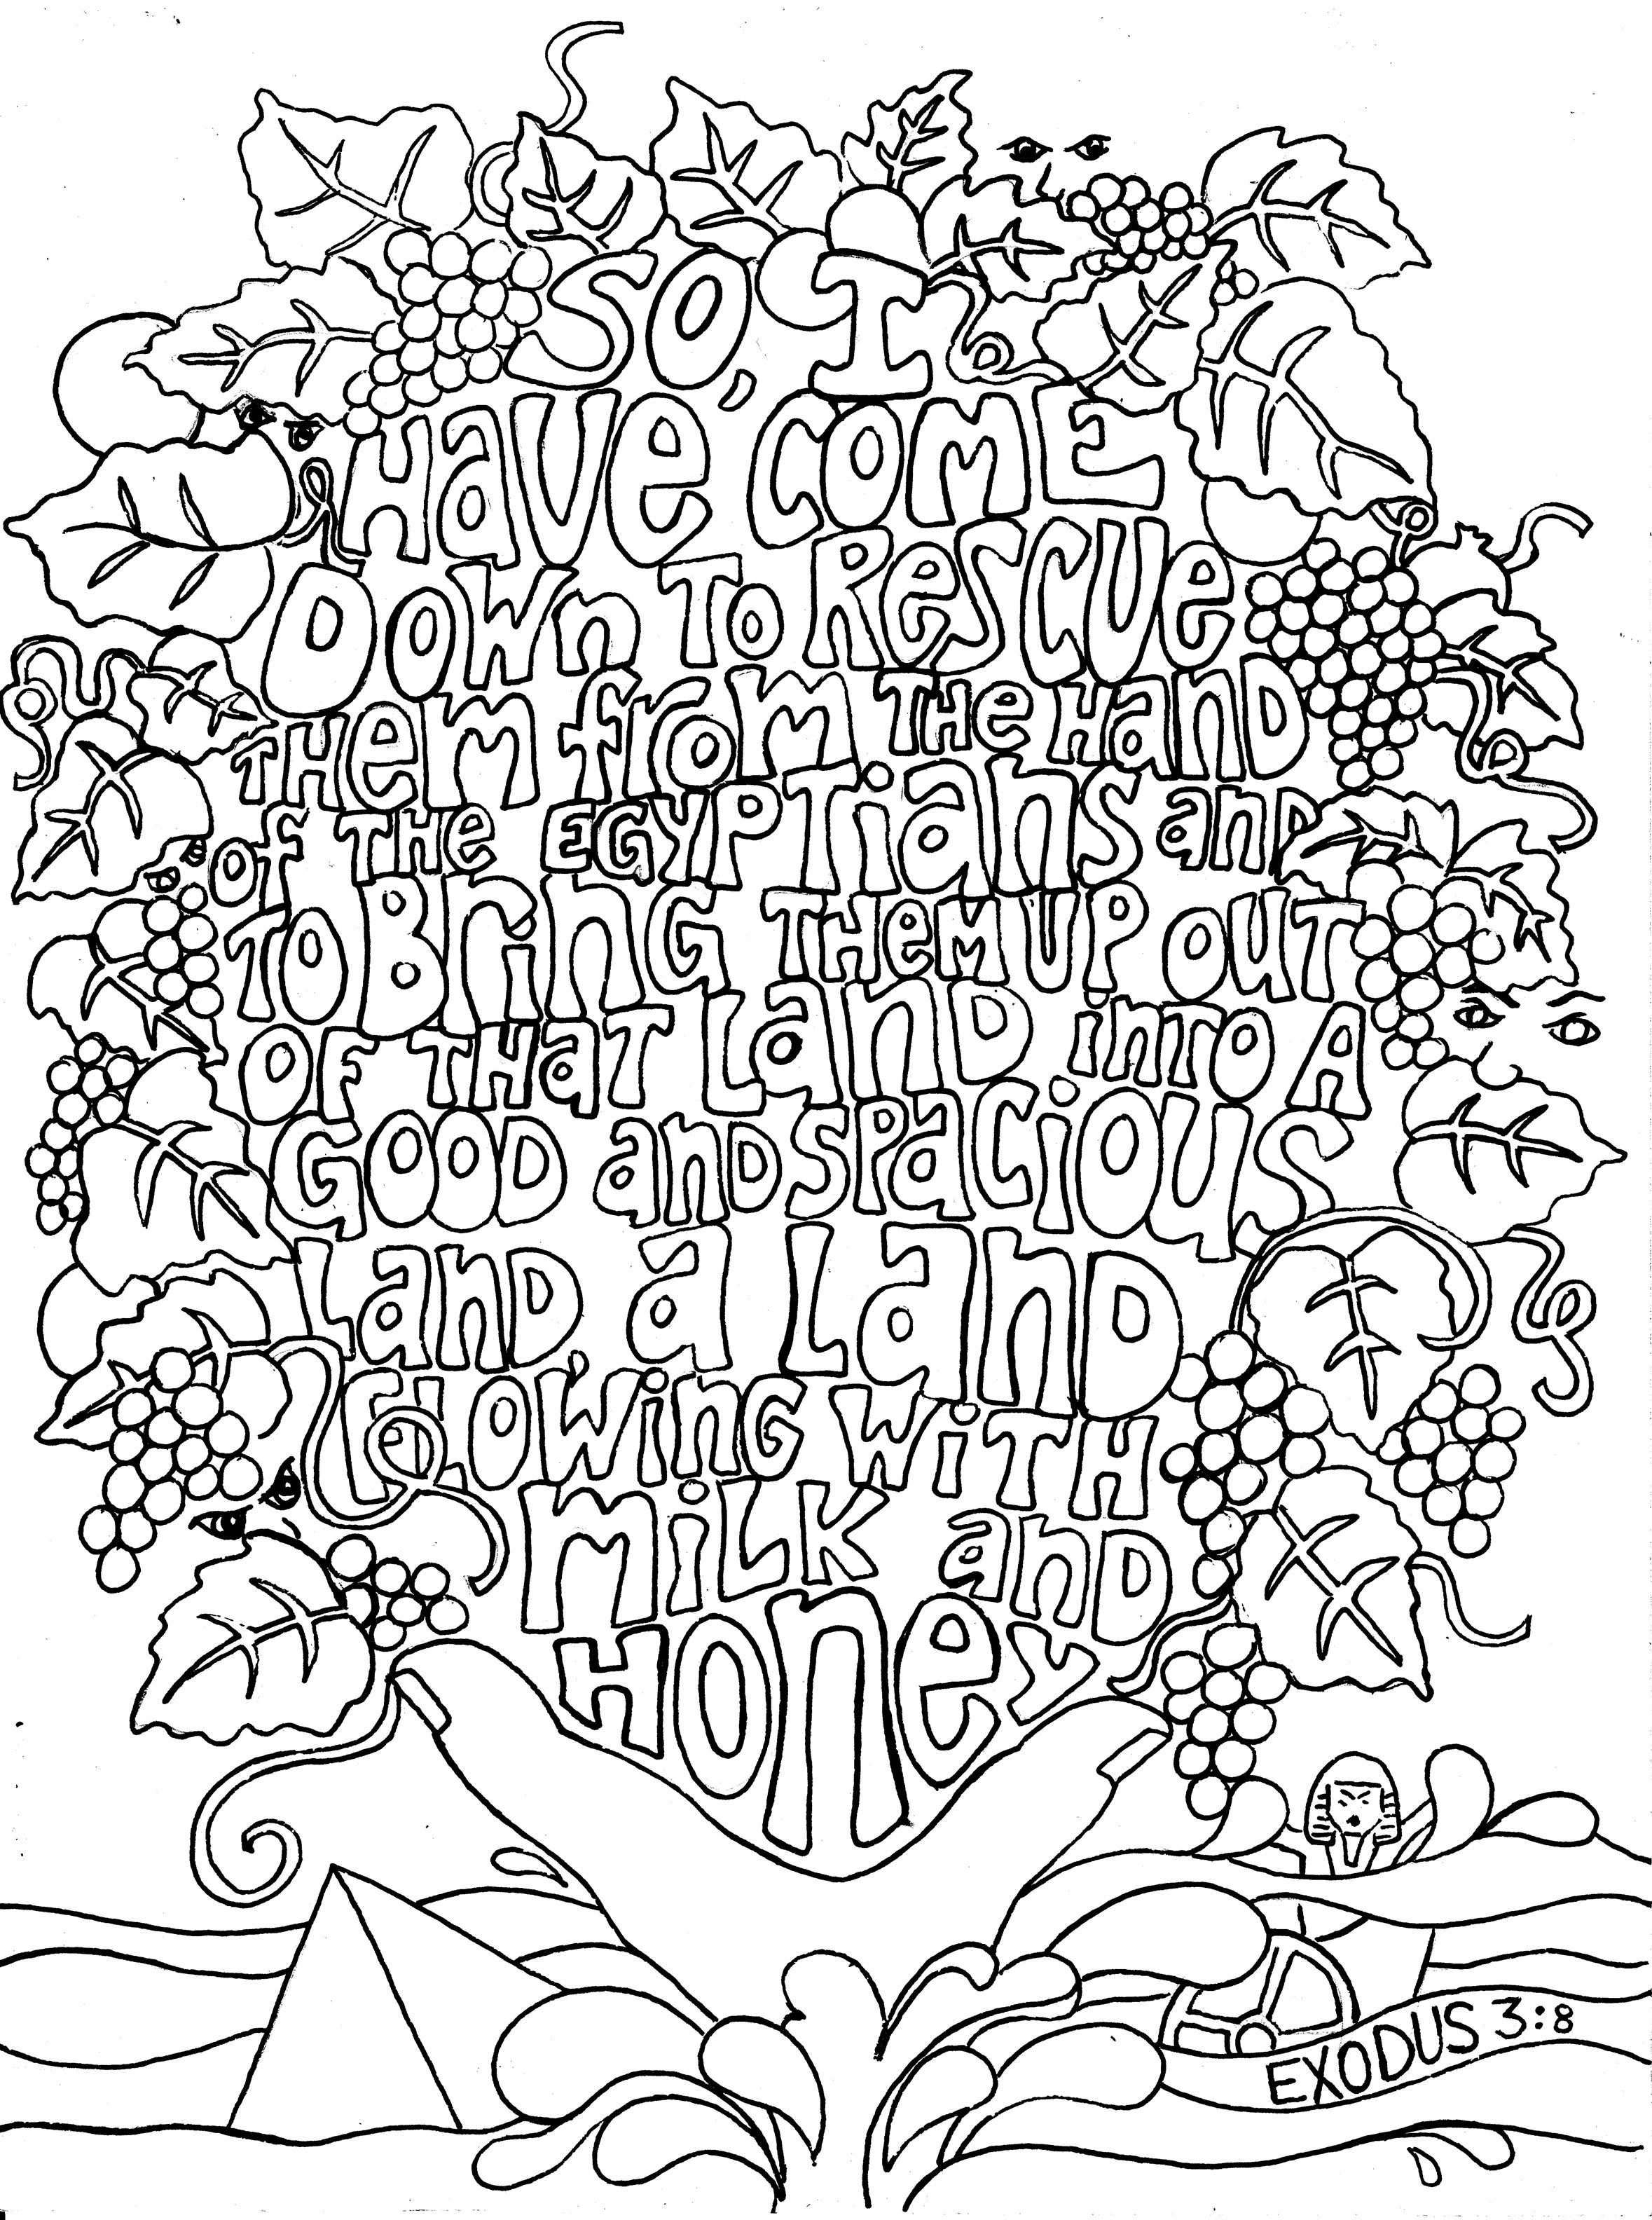 Coloring pages with bible verses - Exodus 3 8 Adult Colouring In Sheets Of Bible Verses Link Is Courtesy Of A Google